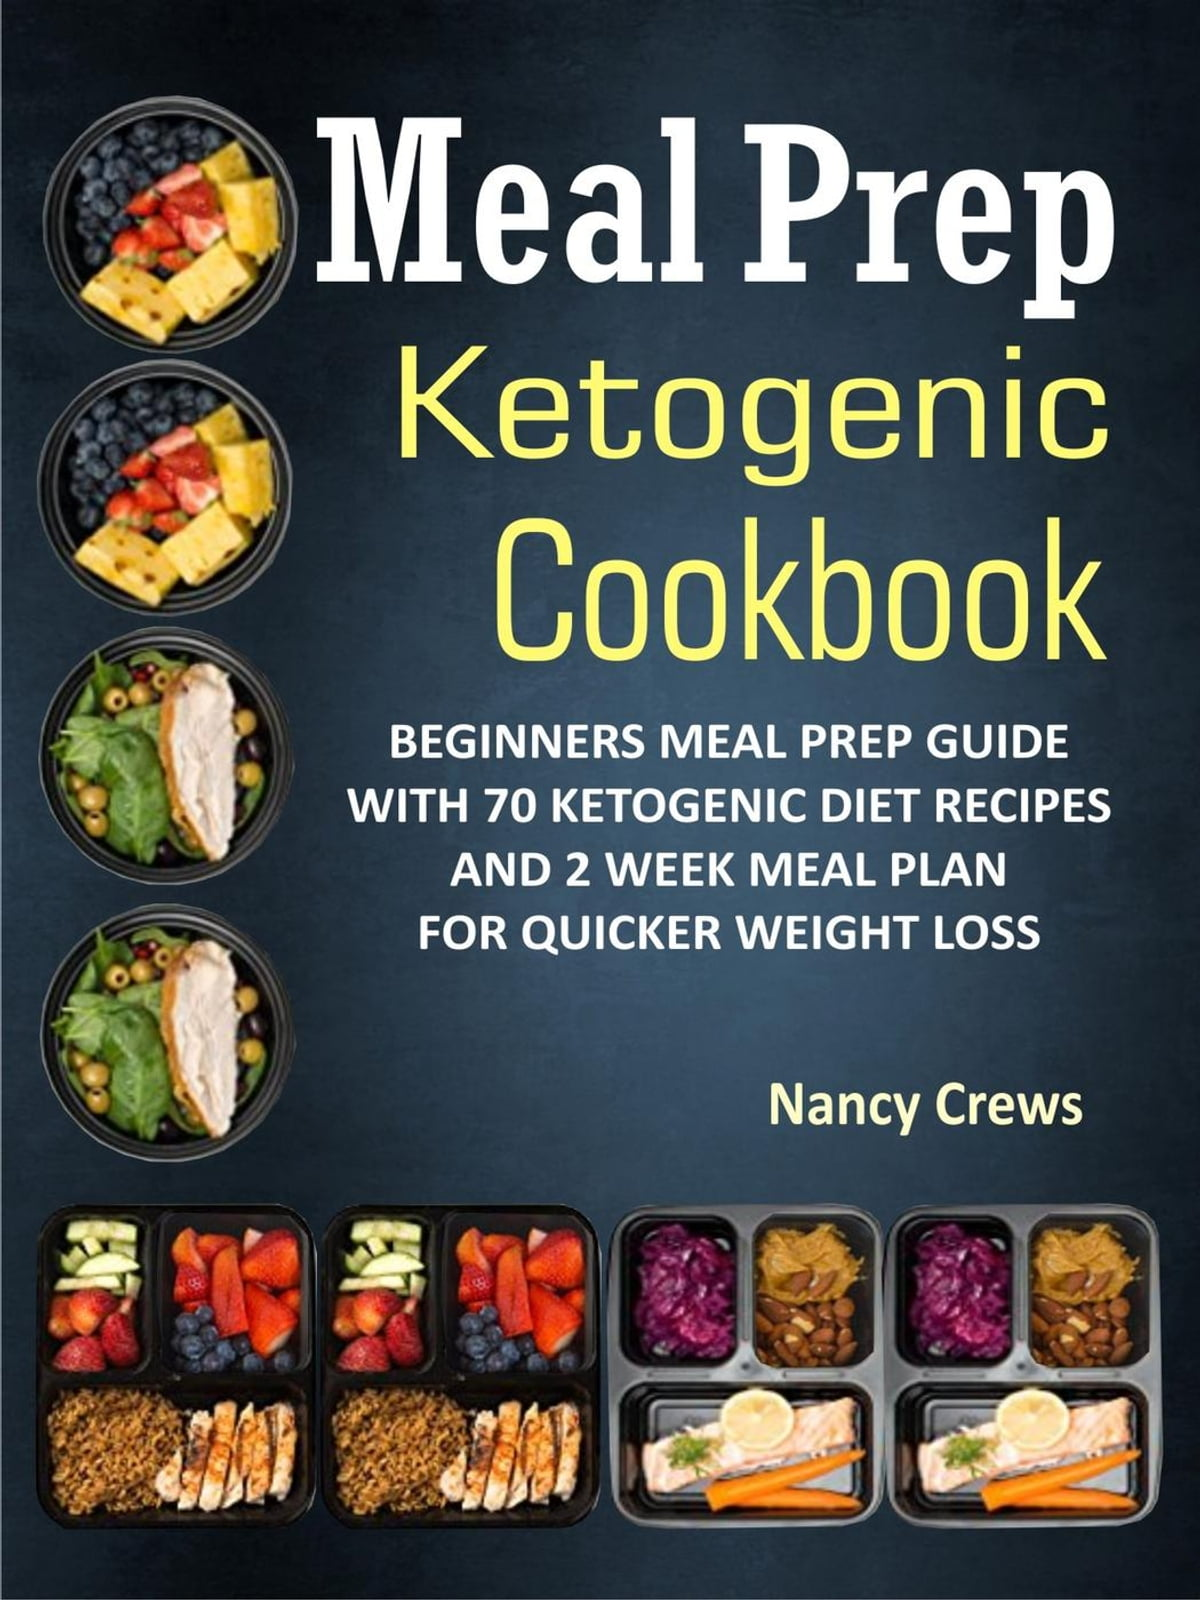 Meal Prep Ketogenic Cookbook Beginners Meal Prep Guide With 70 Ketogenic Diet Recipes And 2 Week Meal Plan For Quicker Weight Loss Rakuten Kobo